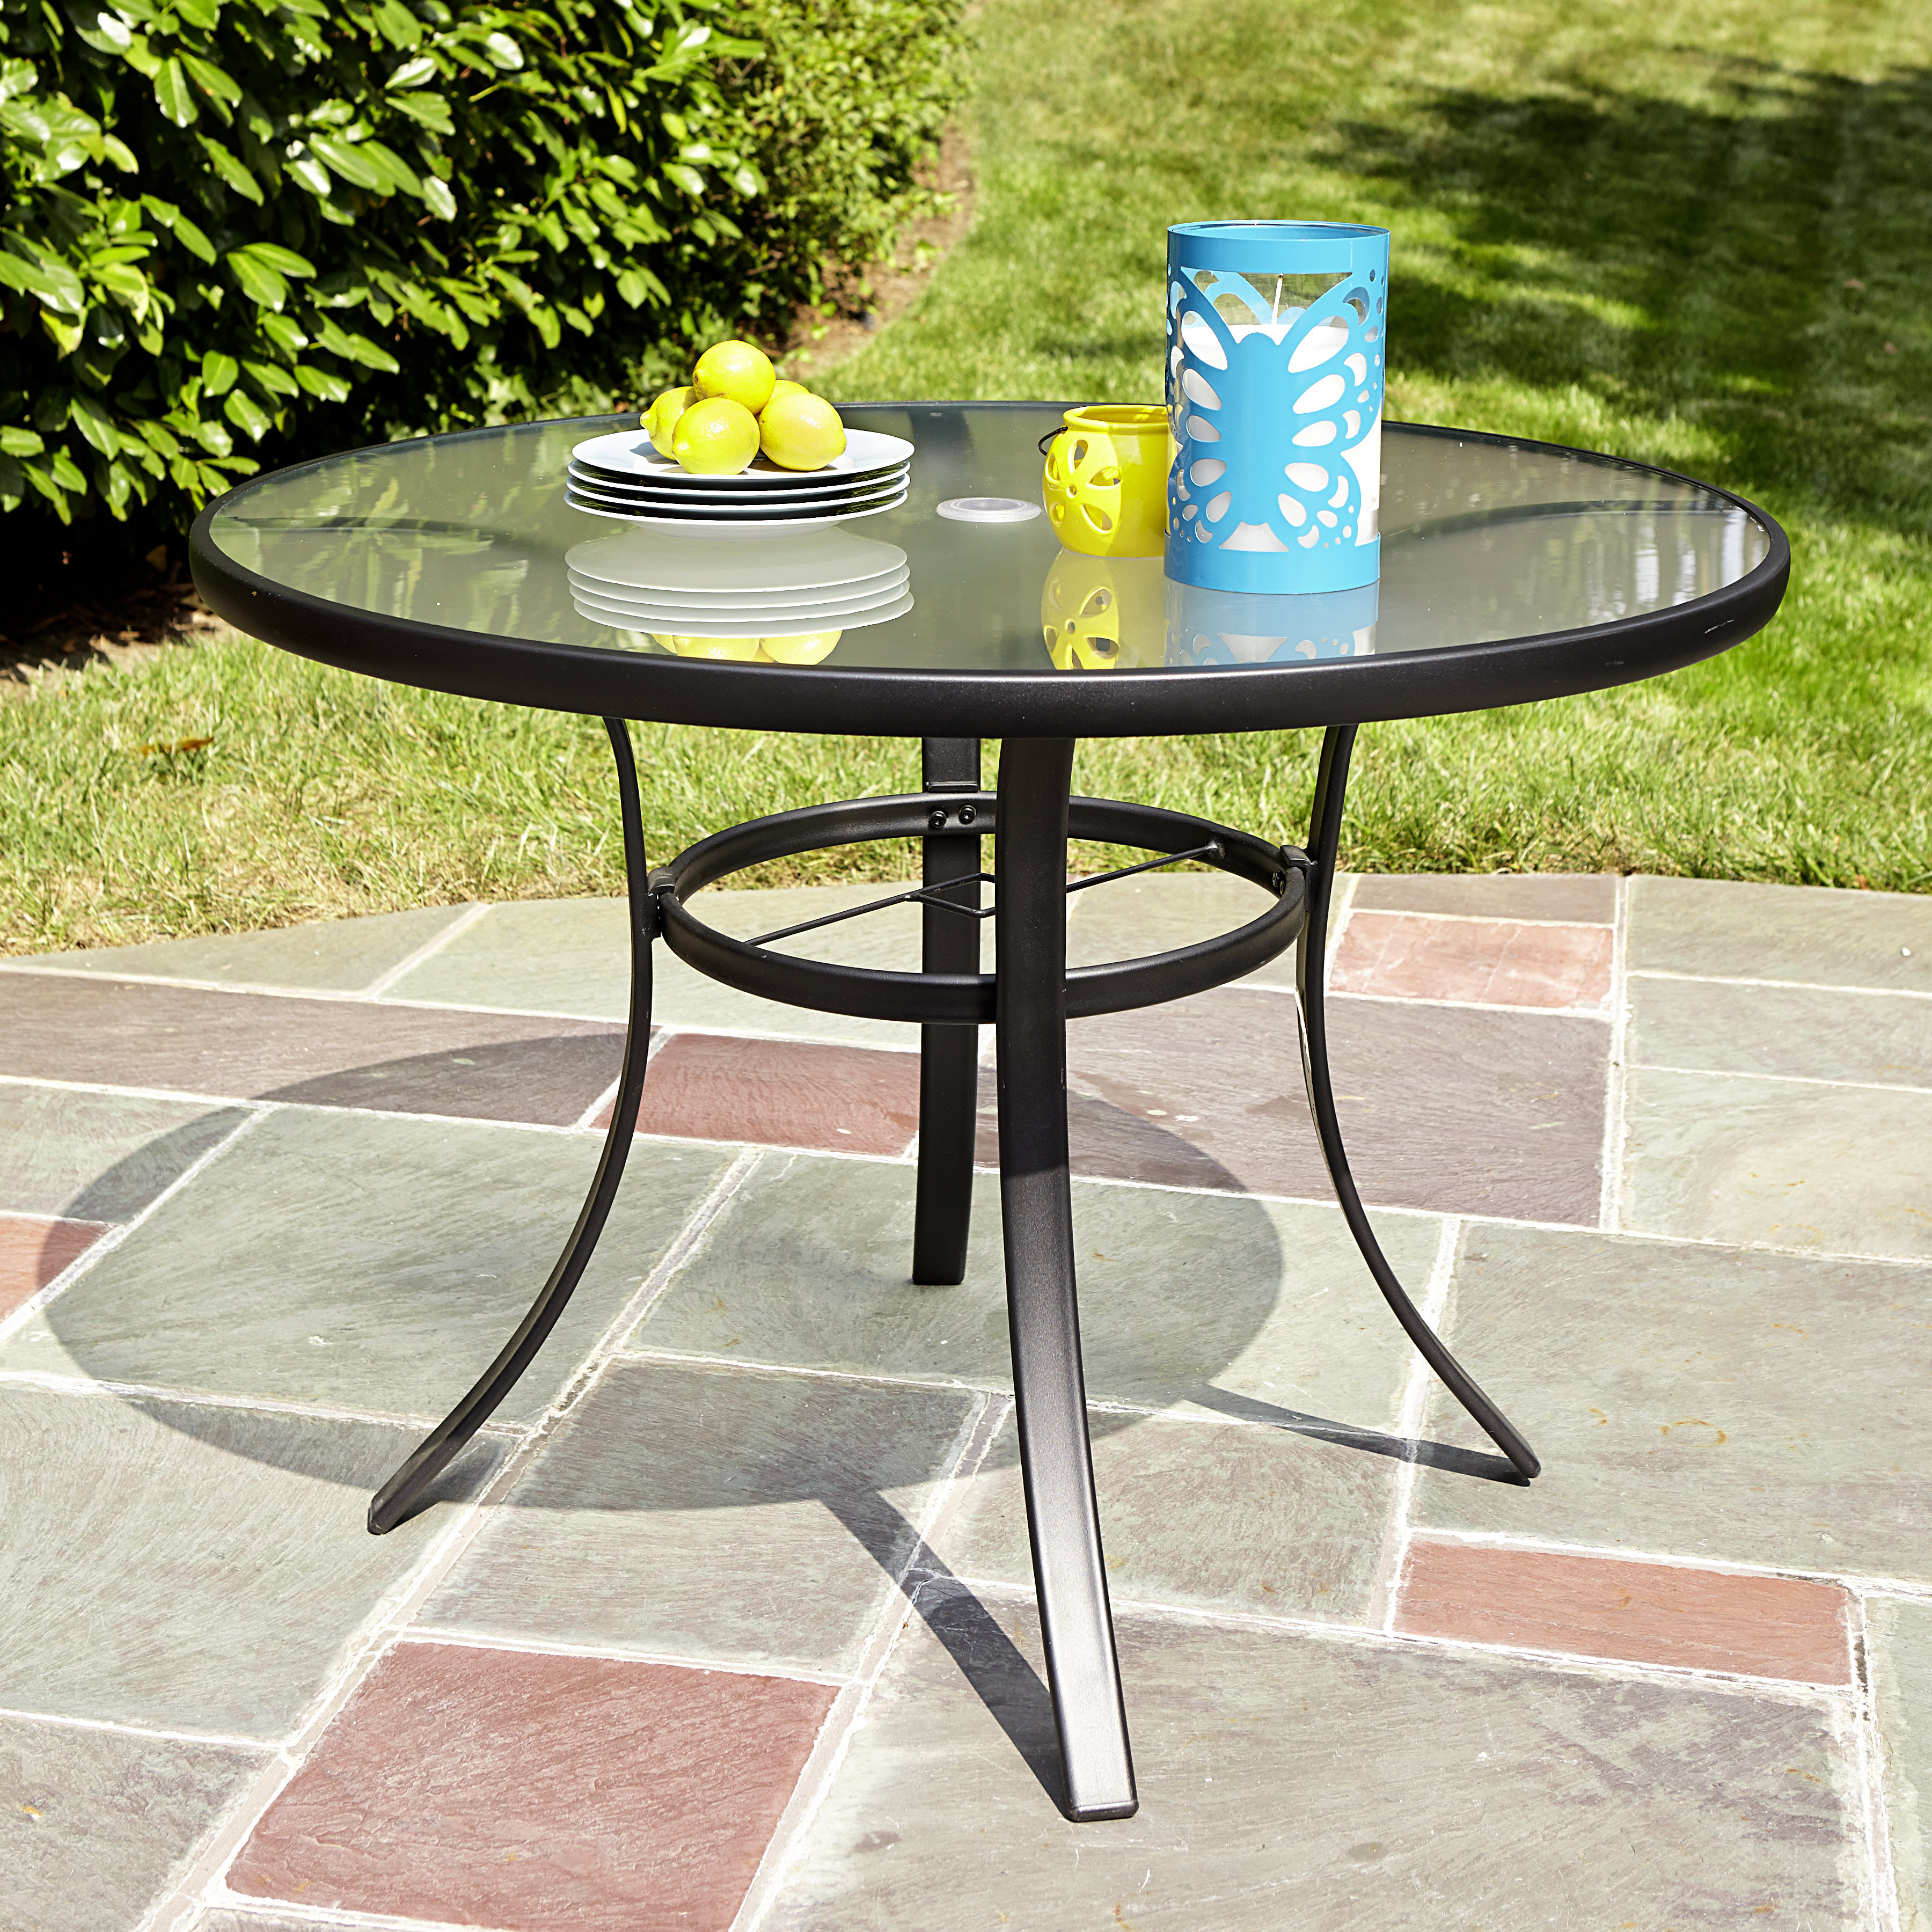 garden tables essential garden bartlett tempered glass dining table *limited availability QFQCNVO